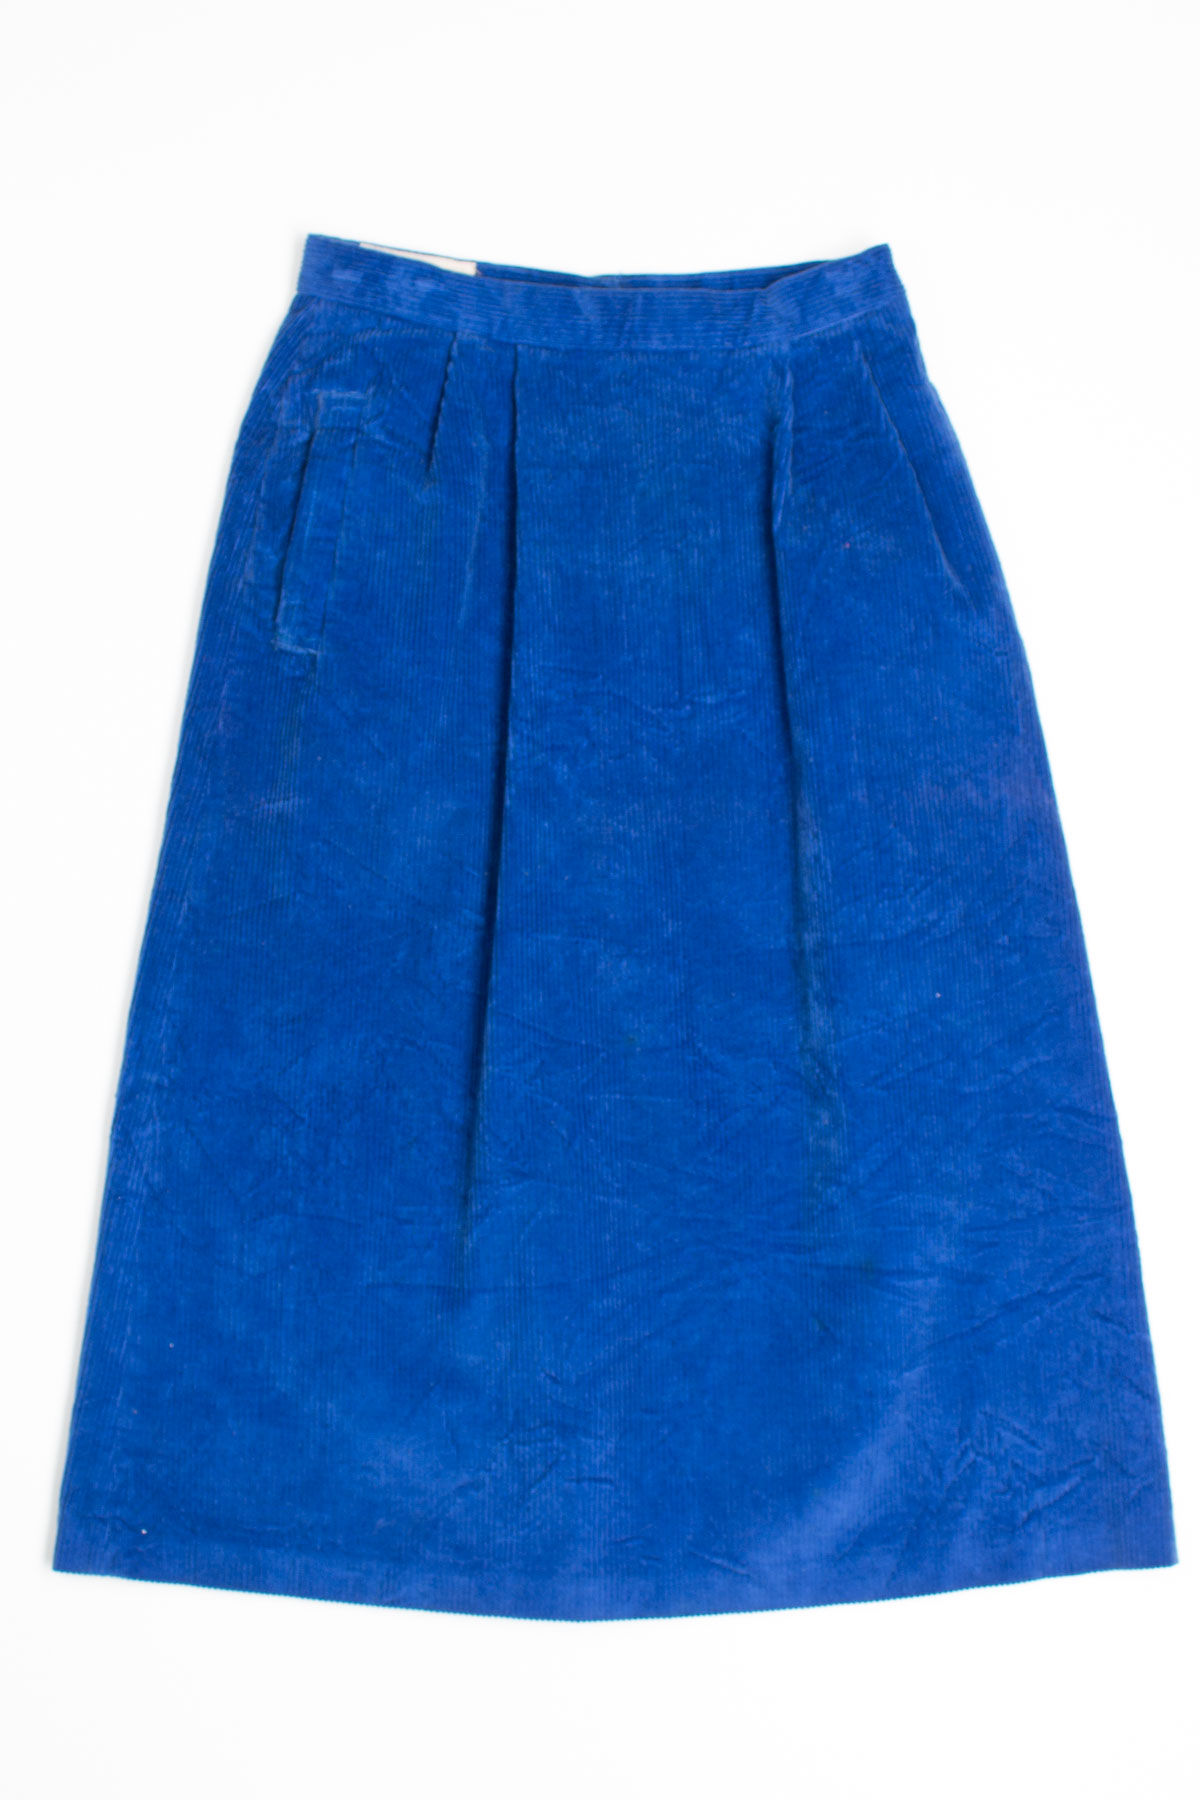 e2c10134f ... Vintage Skirts / Royal Blue Corduroy Skirt. 1